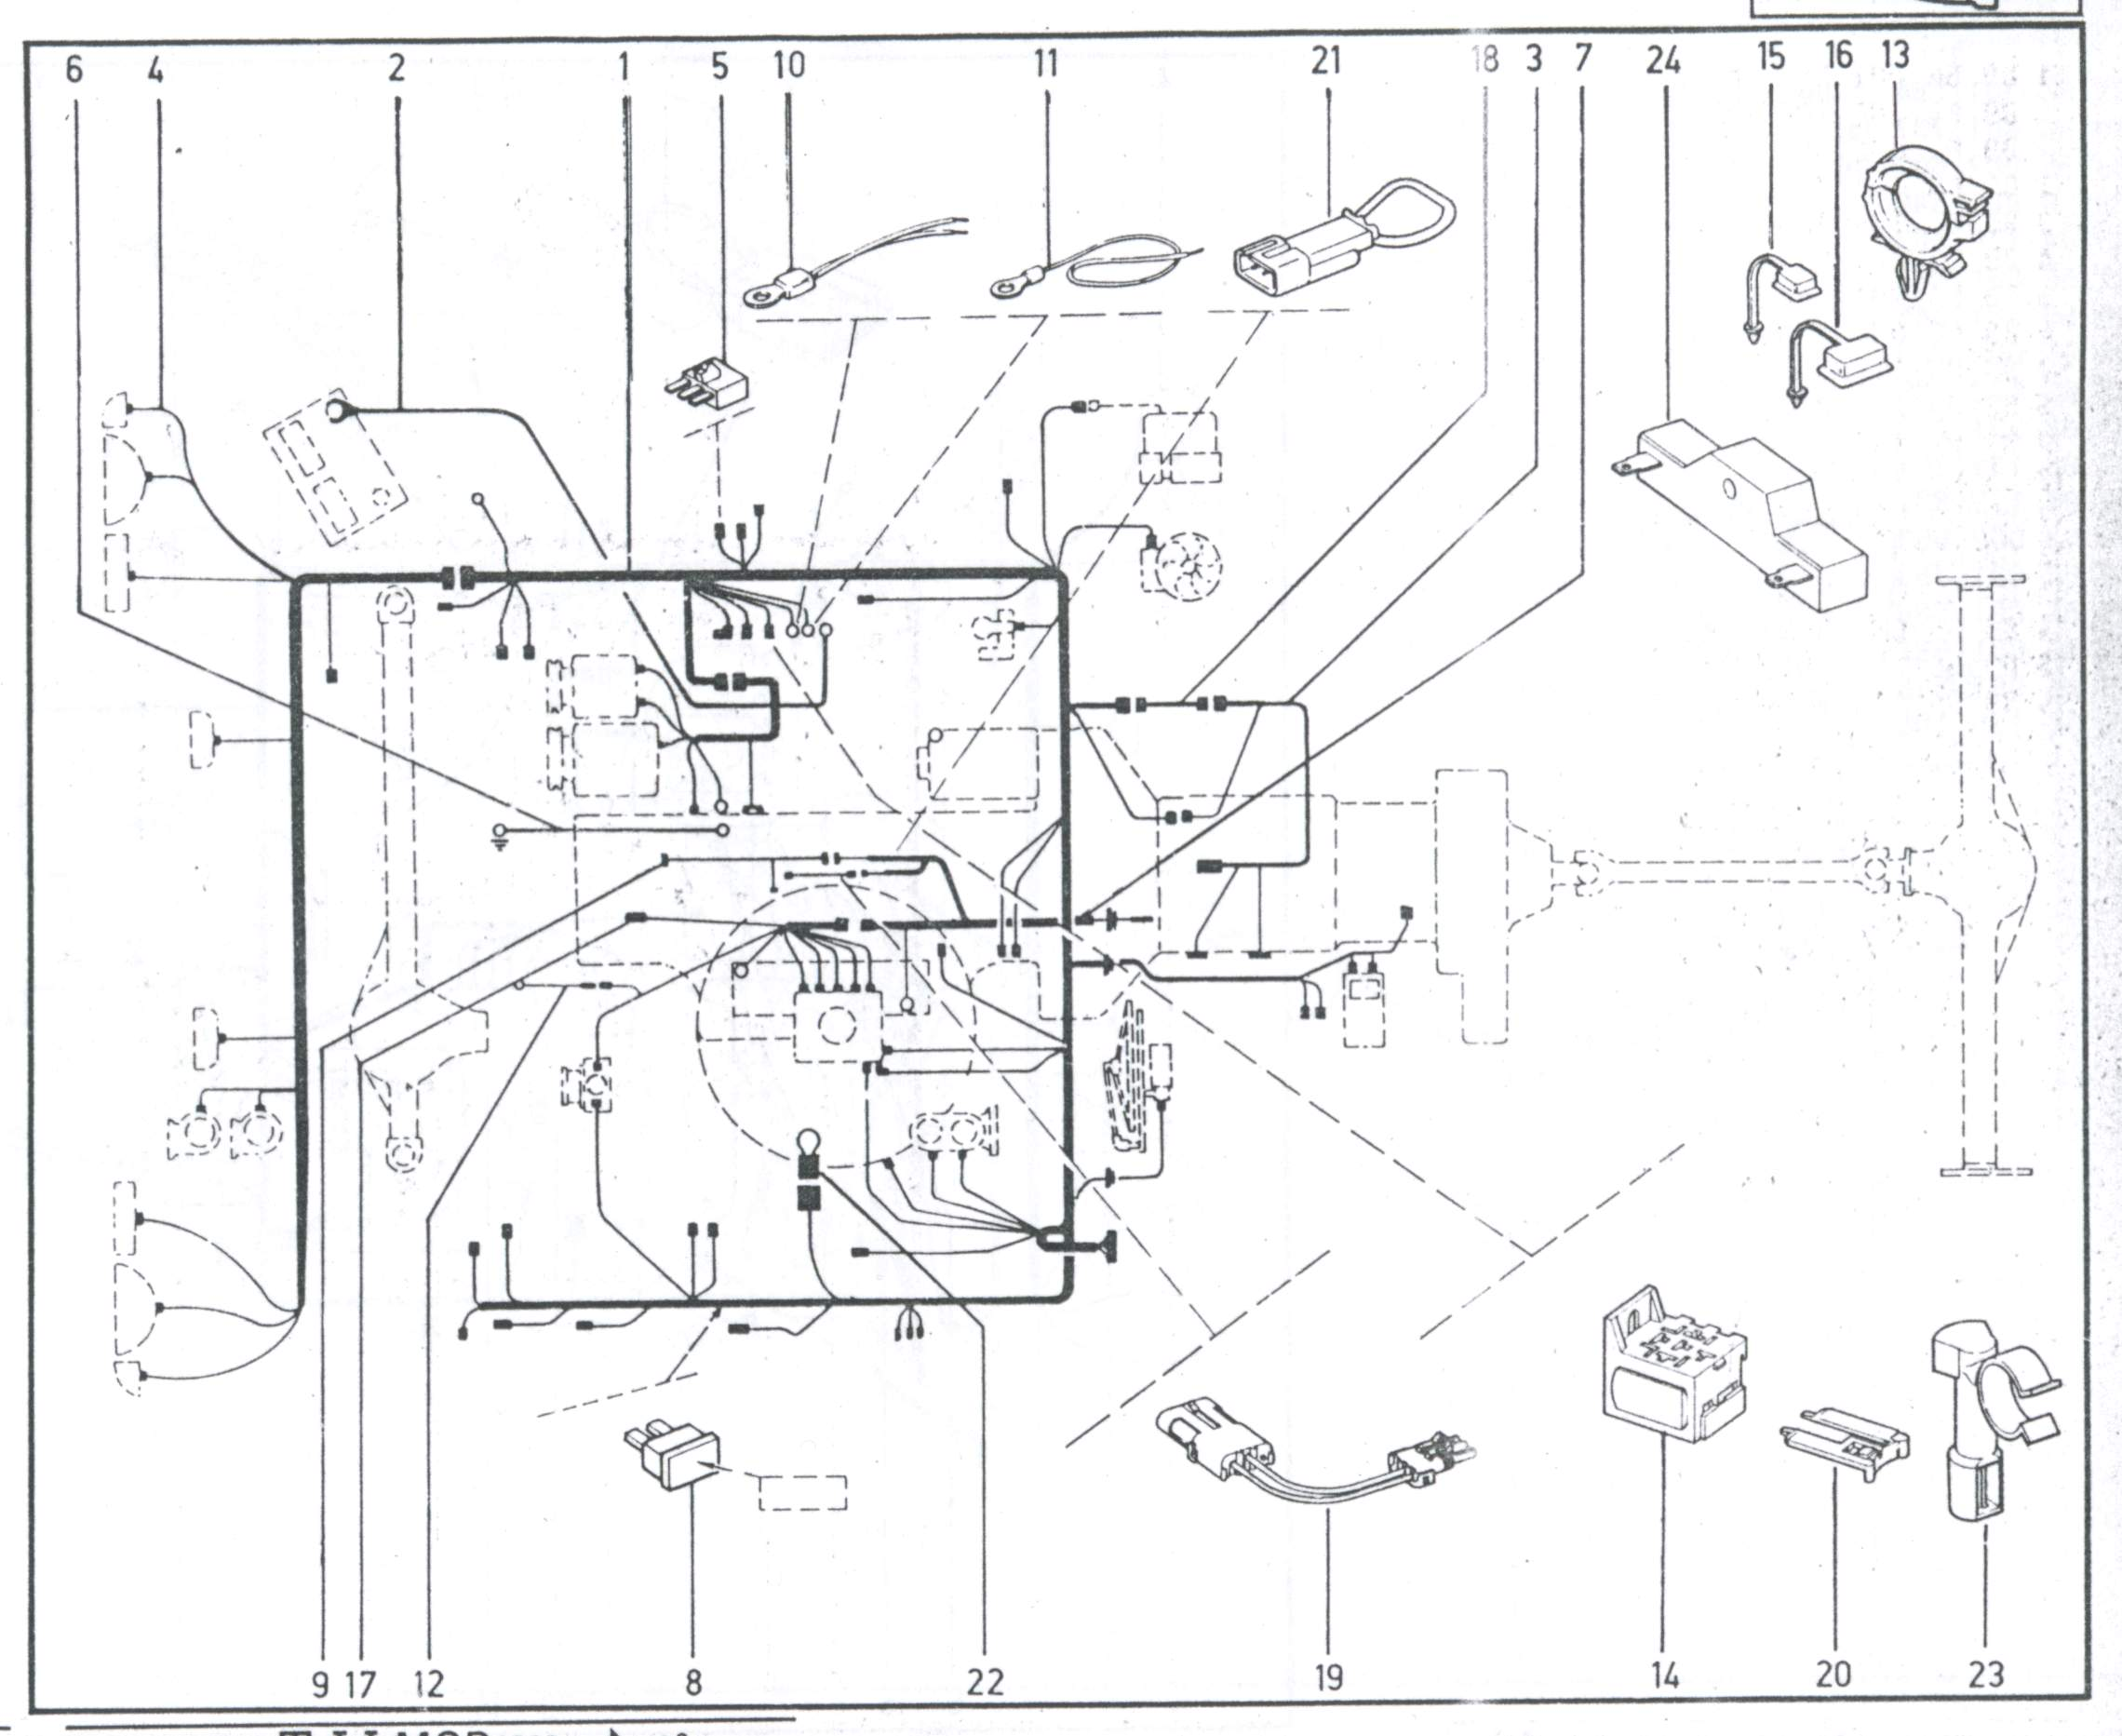 A Bu Wiring Diagram Le Grand